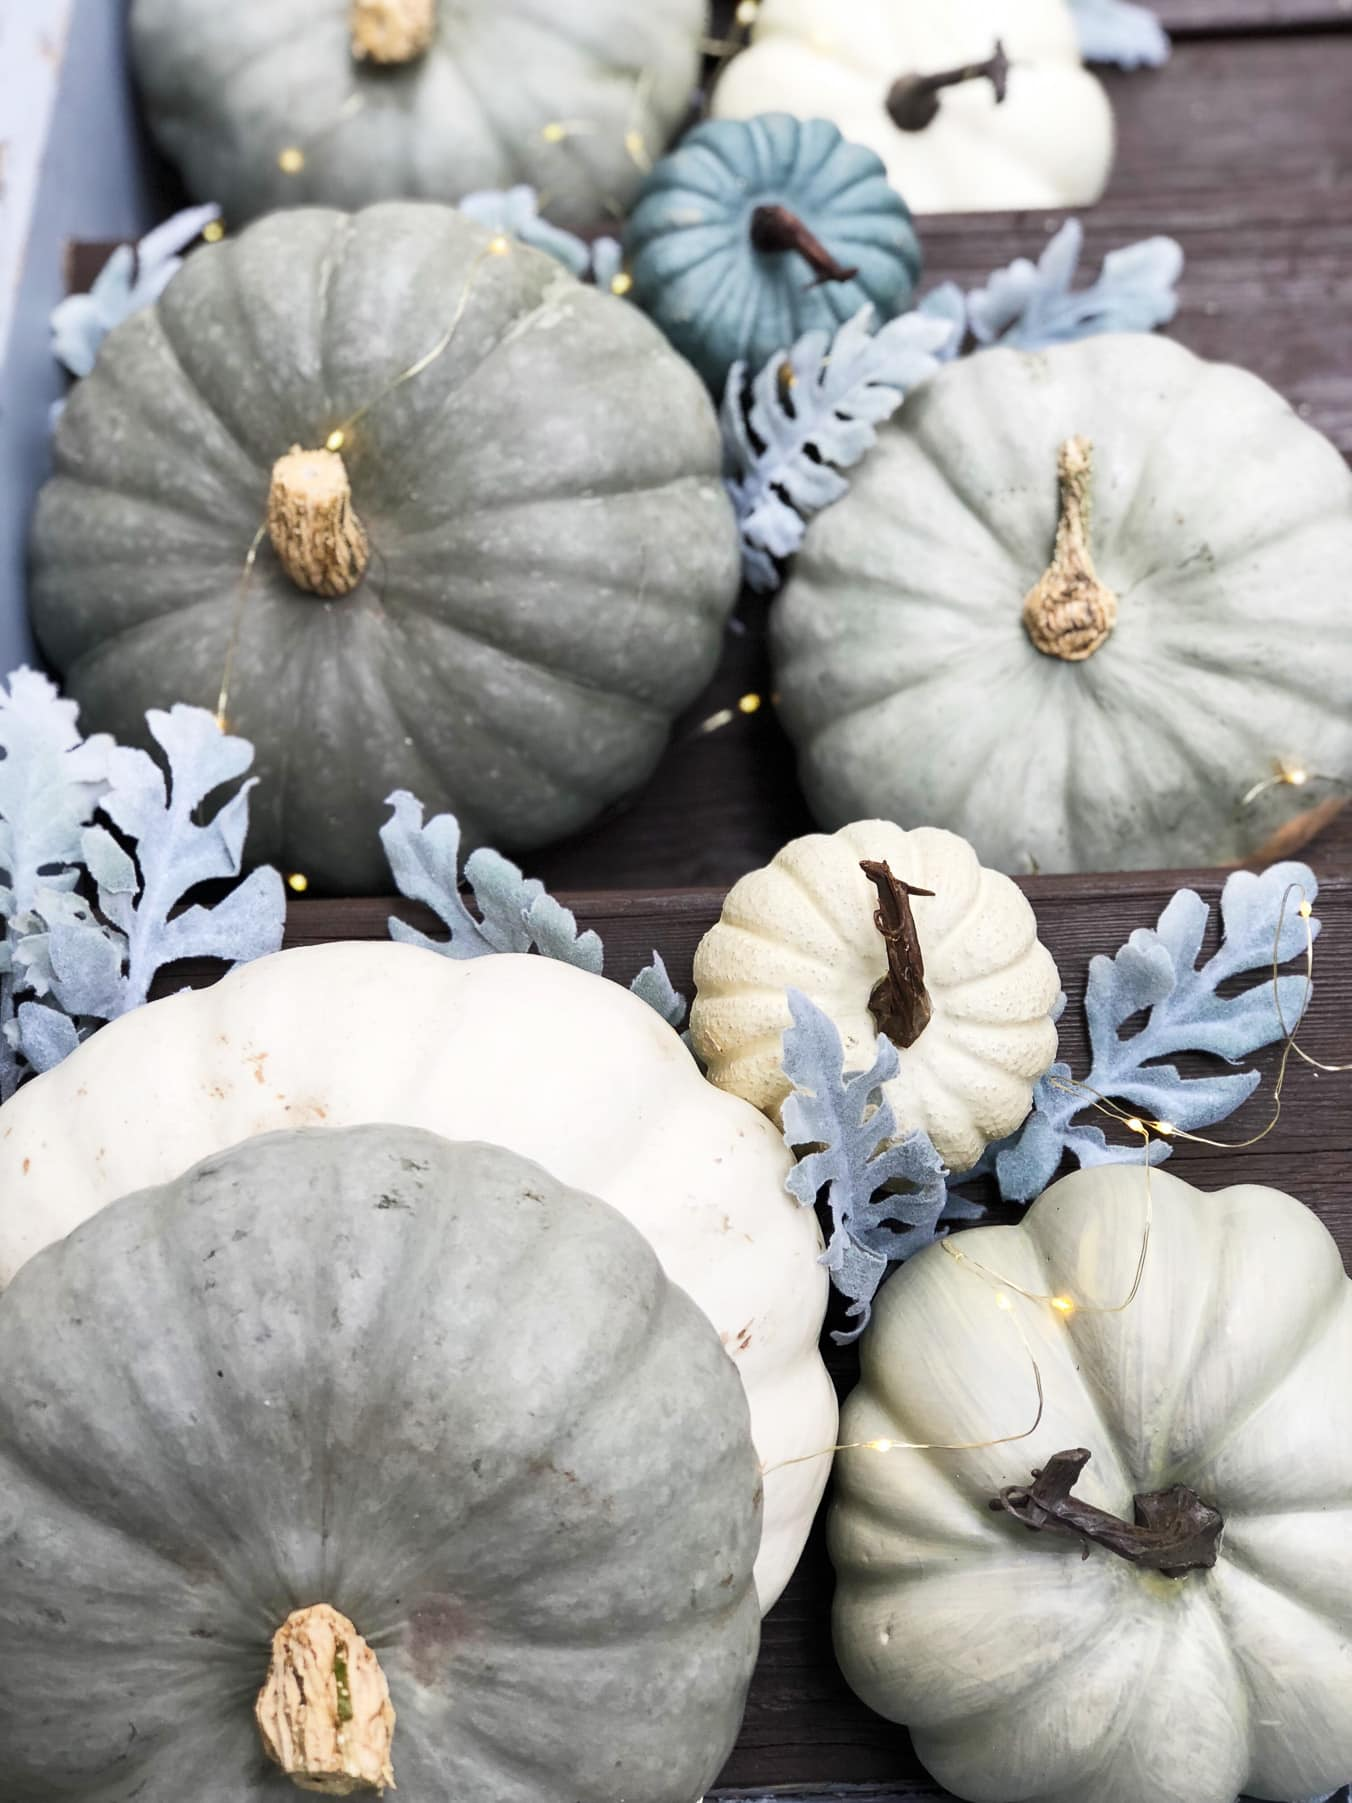 A top down view of blue and grey pumpkins and twinkly lights